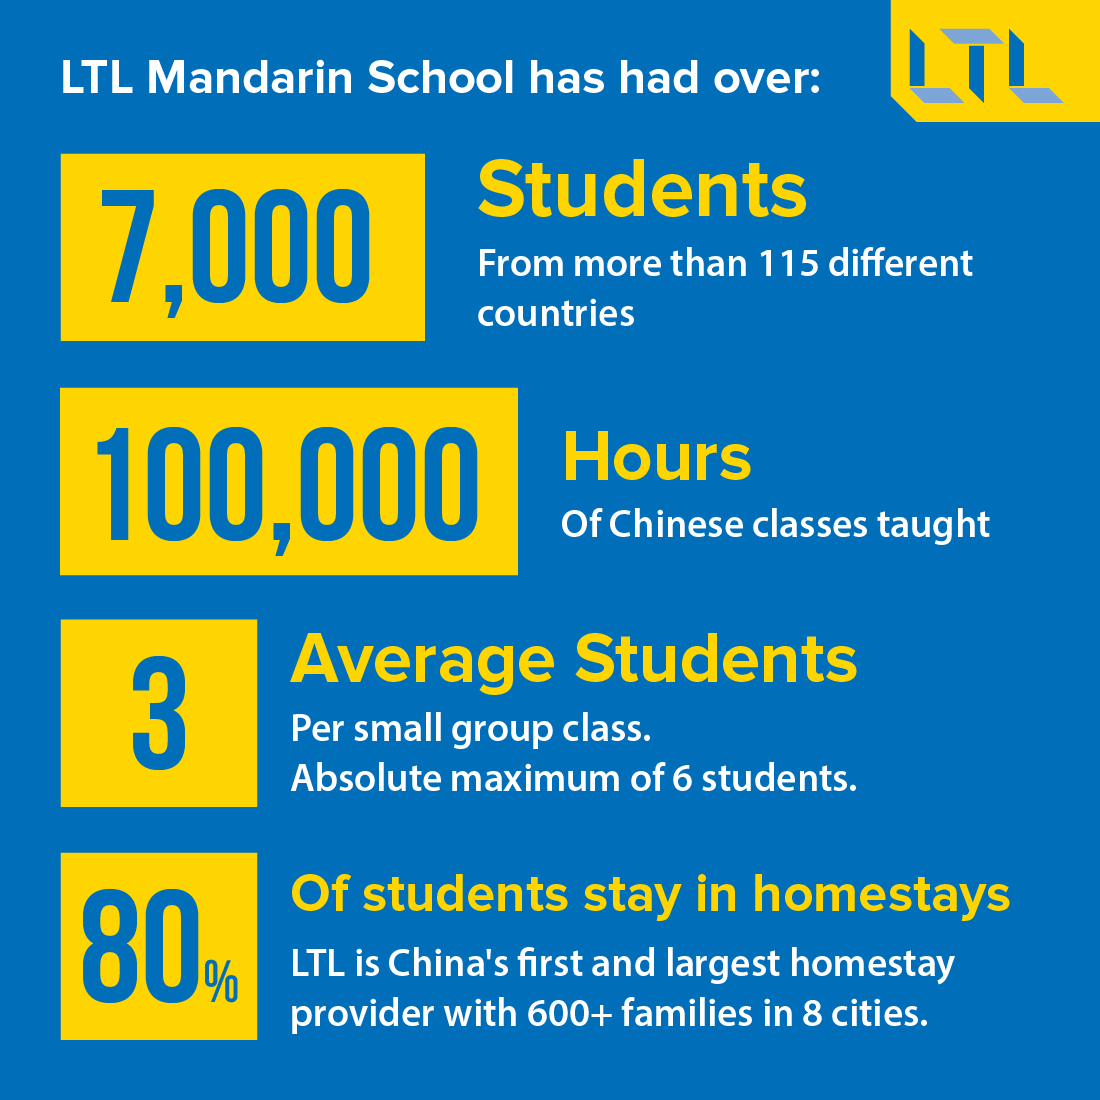 infographic-blue-01-students